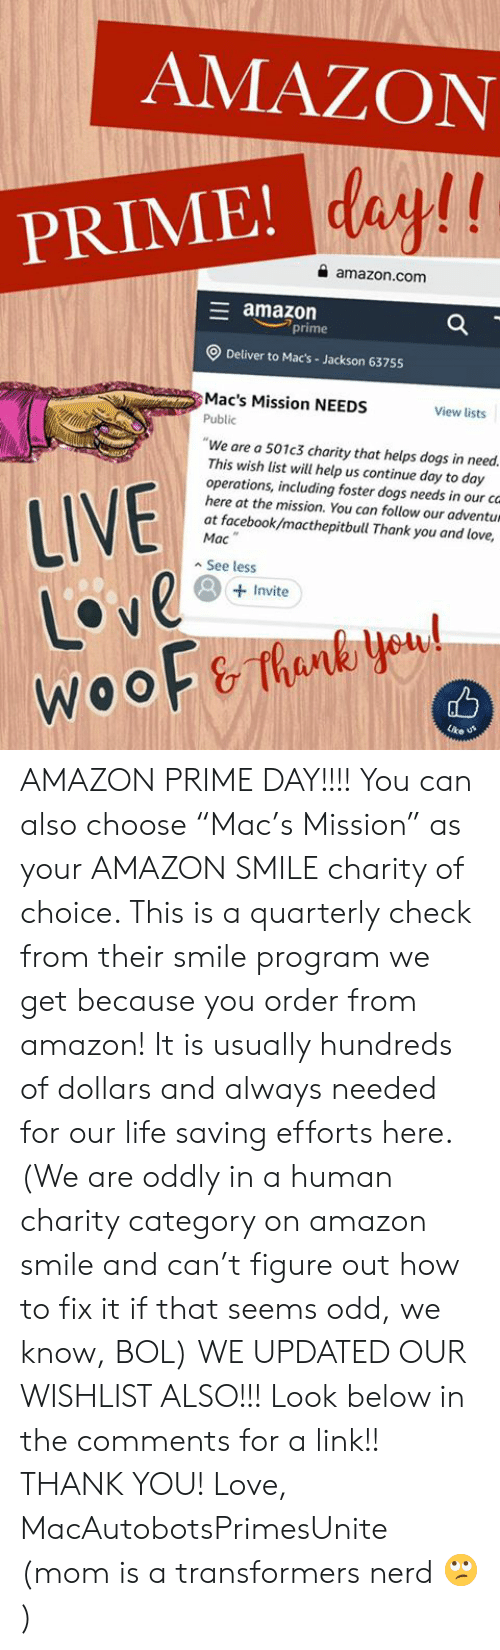 "Amazon, Amazon Prime, and Dogs: AMAZON  PRIME! day!!  amazon.com  E amazon  prime  Deliver to Mac's- Jackson 63755  Mac's Mission NEEDS  View lists  Public  ""We are a 501c3 charity that helps dogs in need.  This wish list will help us continue day to day  operations, including foster dogs needs in  here at the mission. You can follow our adventum  at facebook/macthepitbull Thank you and love,  Mac  LIVE  Love  WOOF&Thank yeul  our cG  See less  Invite  Lre AMAZON PRIME DAY!!!! You can also choose ""Mac's Mission"" as your AMAZON SMILE charity of choice. This is a quarterly check from their smile program we get because you order from amazon! It is usually hundreds of dollars and always needed for our life saving efforts here. (We are oddly in a human charity category on amazon smile and can't figure out how to fix it if that seems odd, we know, BOL)   WE UPDATED OUR WISHLIST ALSO!!! Look below in the comments for a link!! THANK YOU!   Love, MacAutobotsPrimesUnite (mom is a transformers nerd 🙄)"